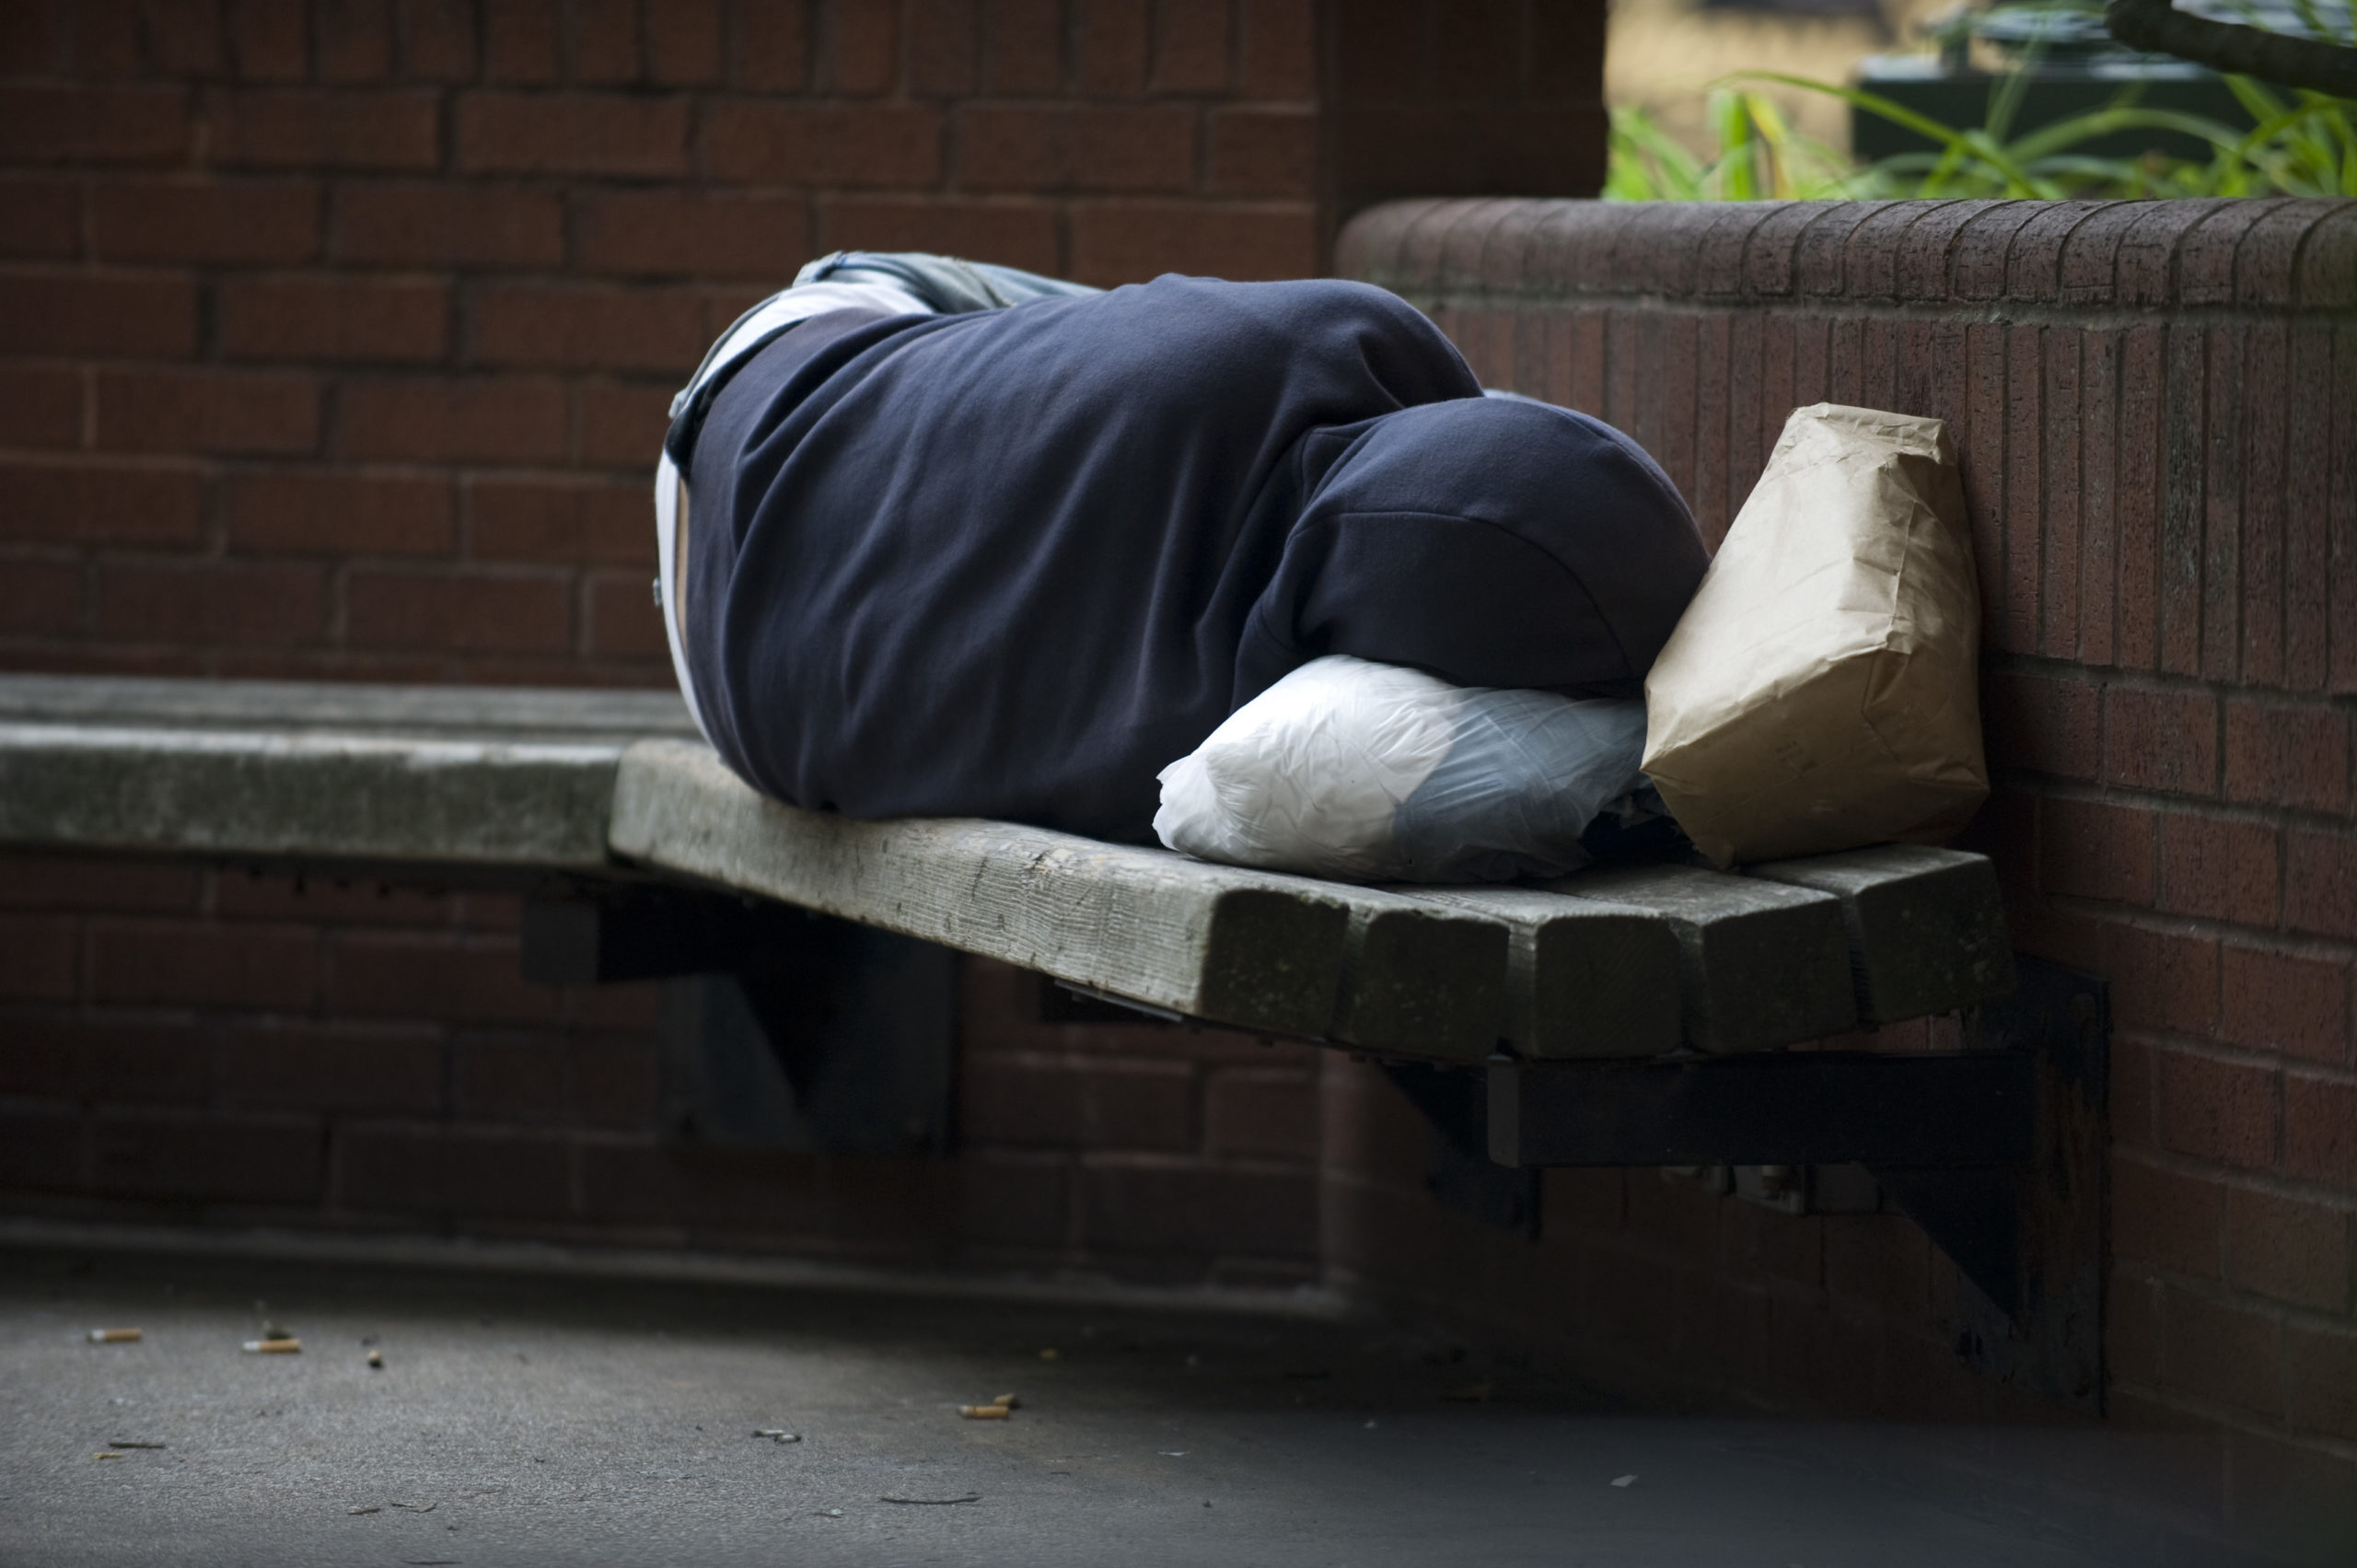 LifePath focuses on mental health in new approach to addressing homelessness